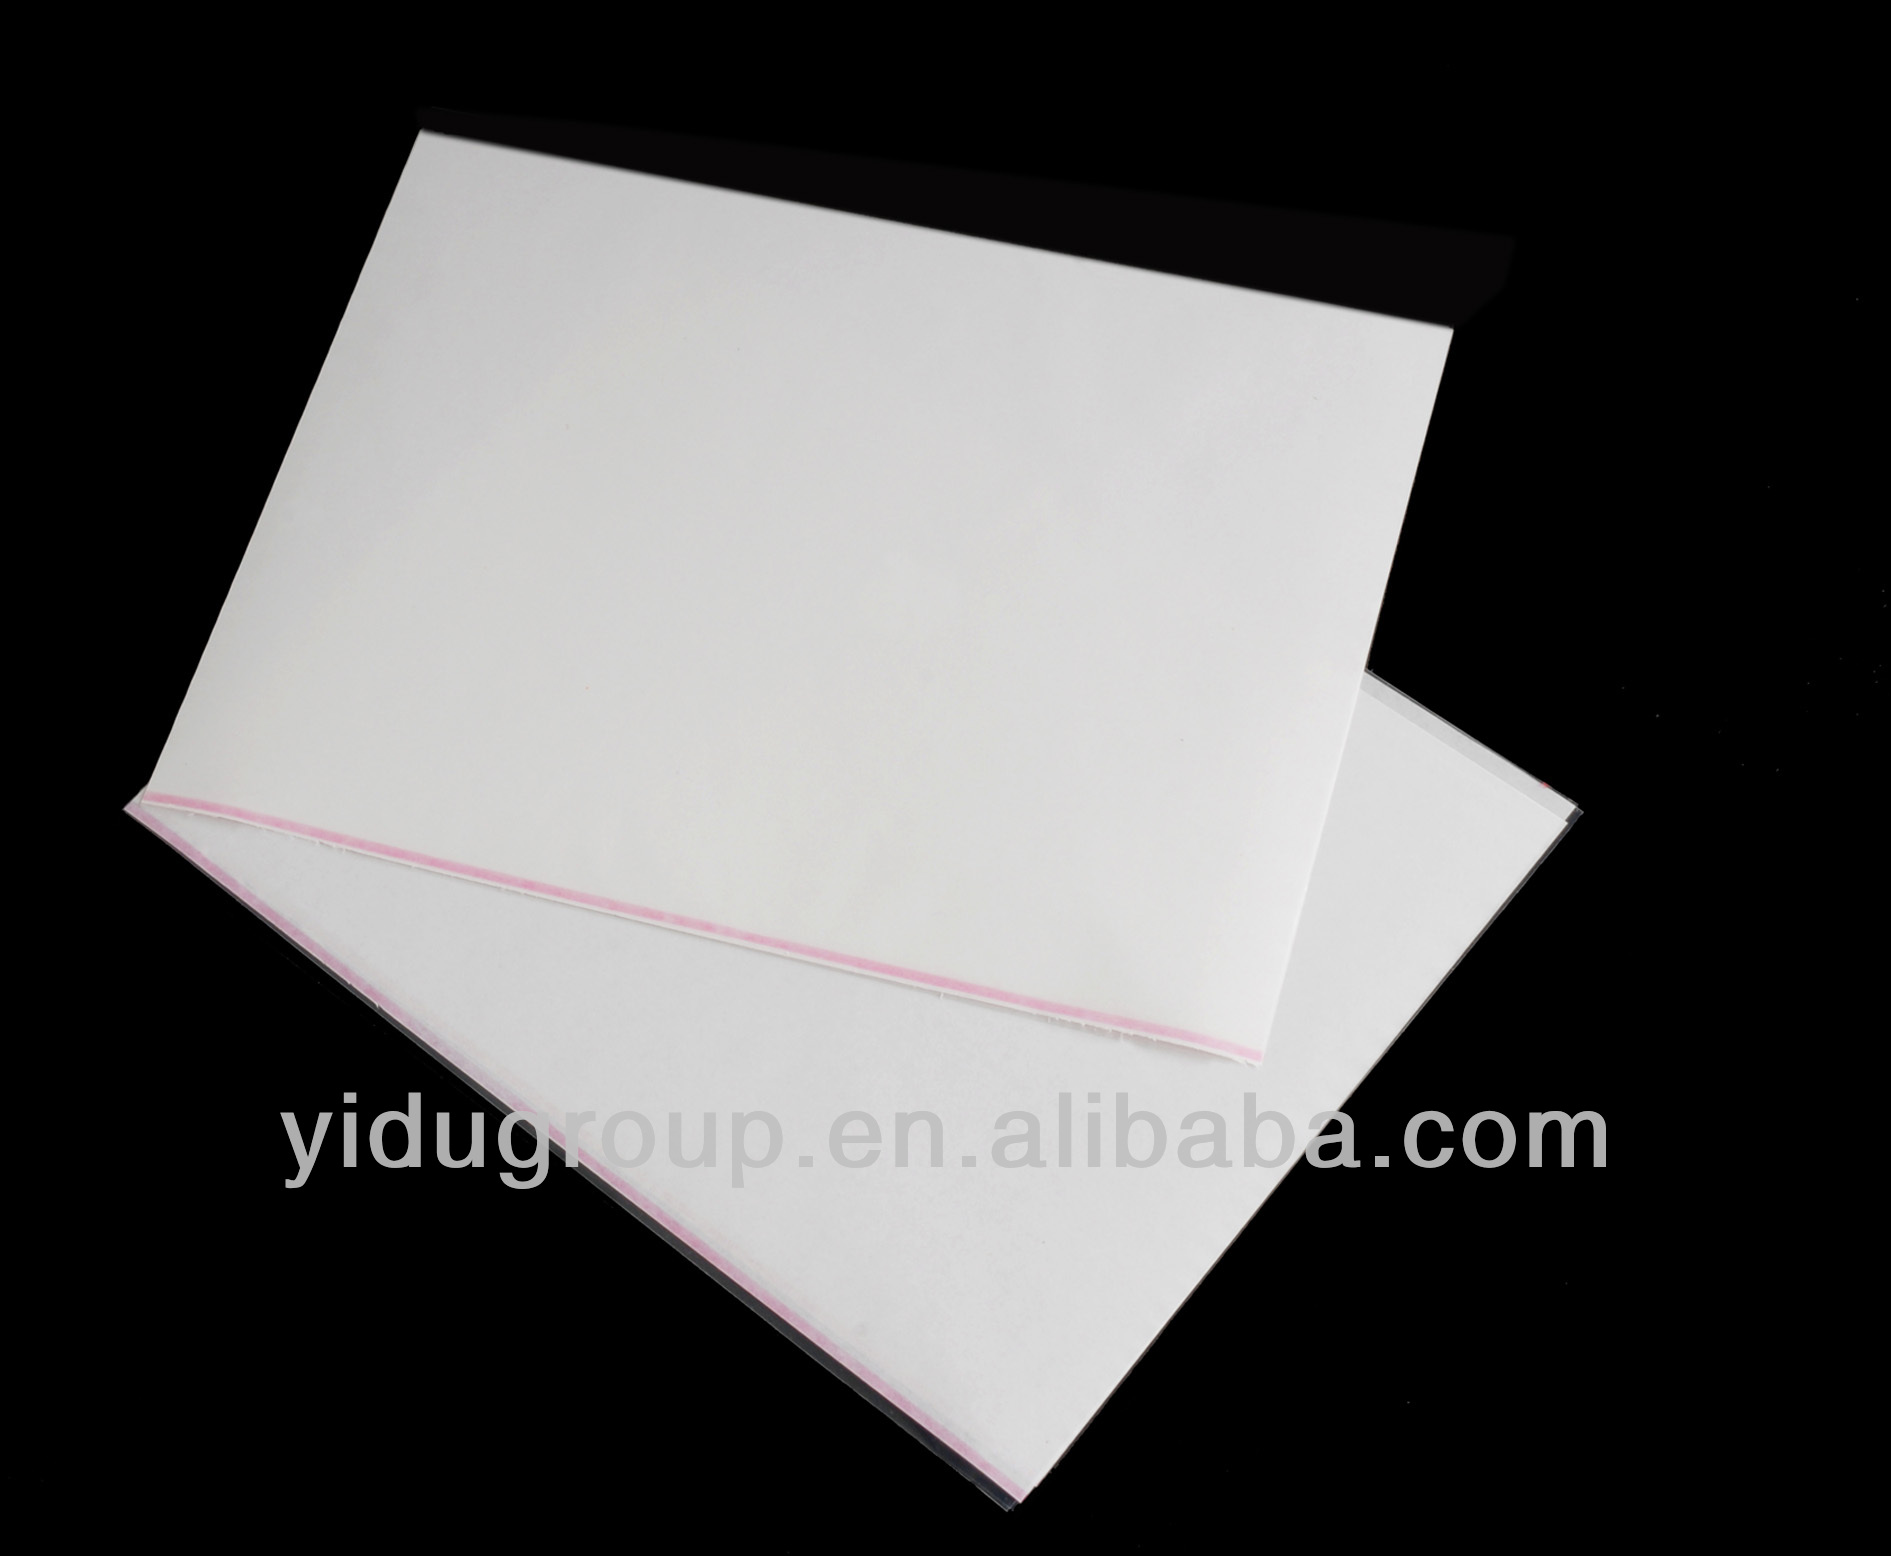 high eva film glass lamination film for sails brand from yidu group